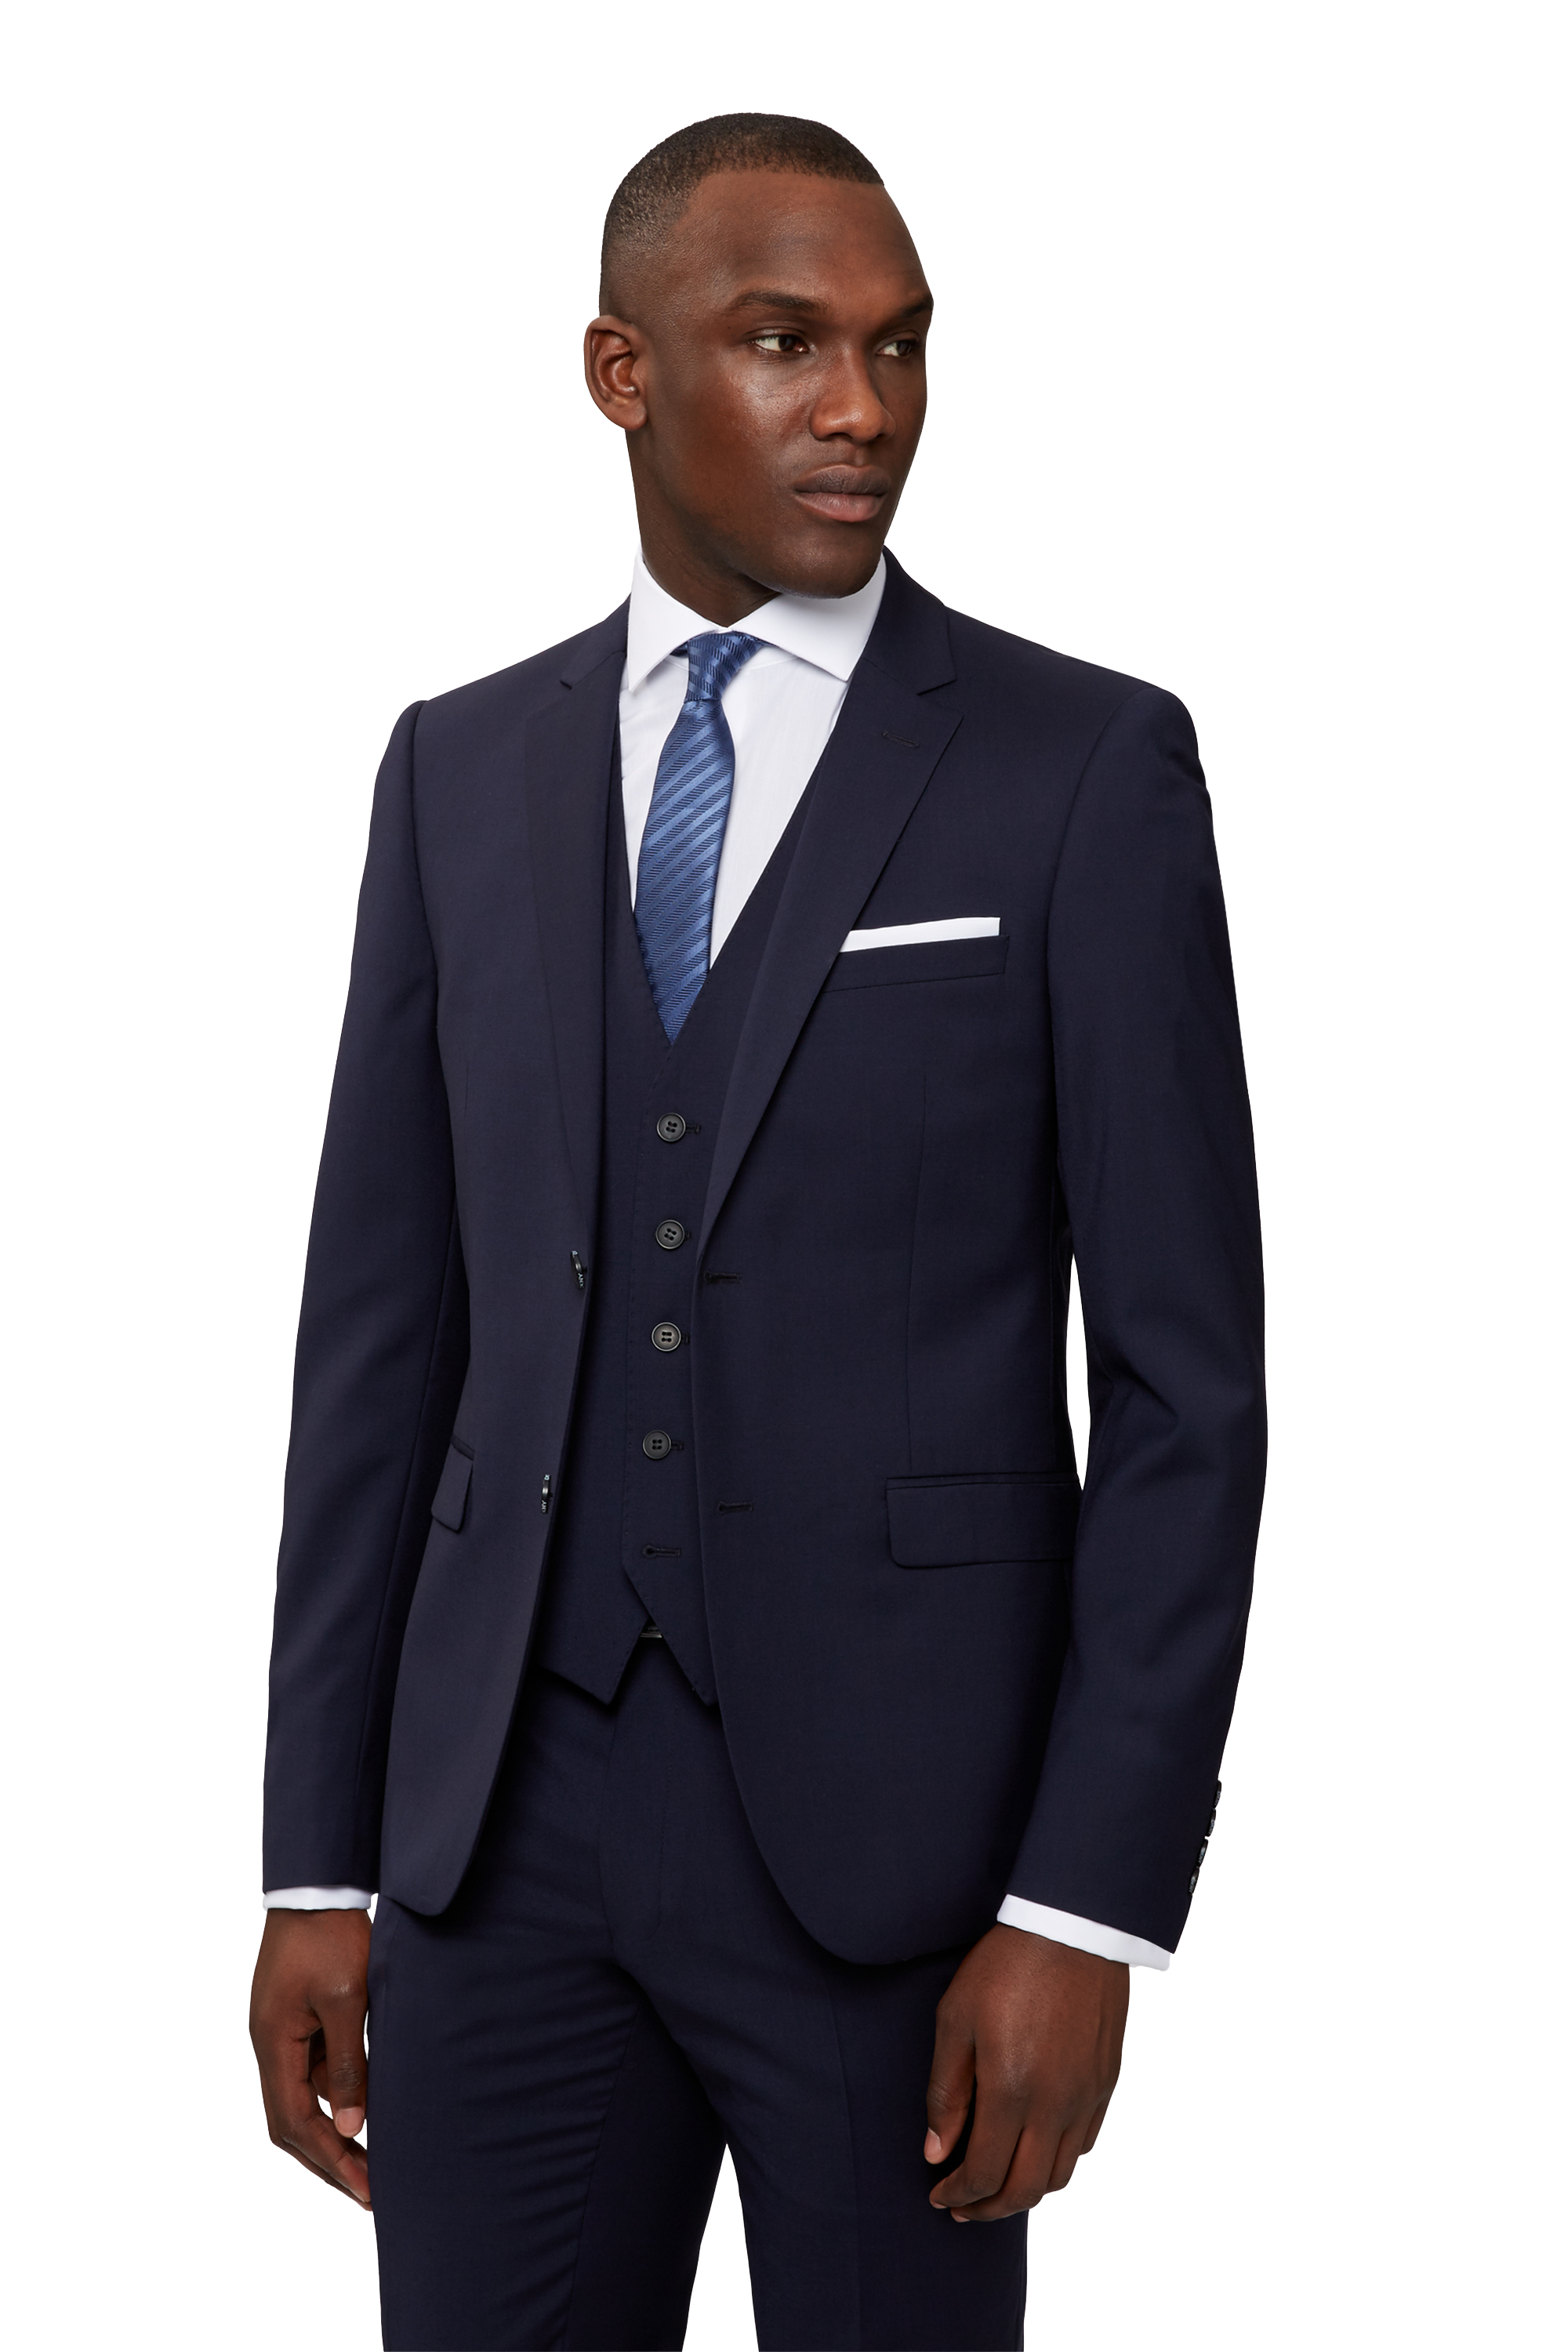 DKNY Mens Navy Blue Suit Jacket Slim Fit Two Button Wool